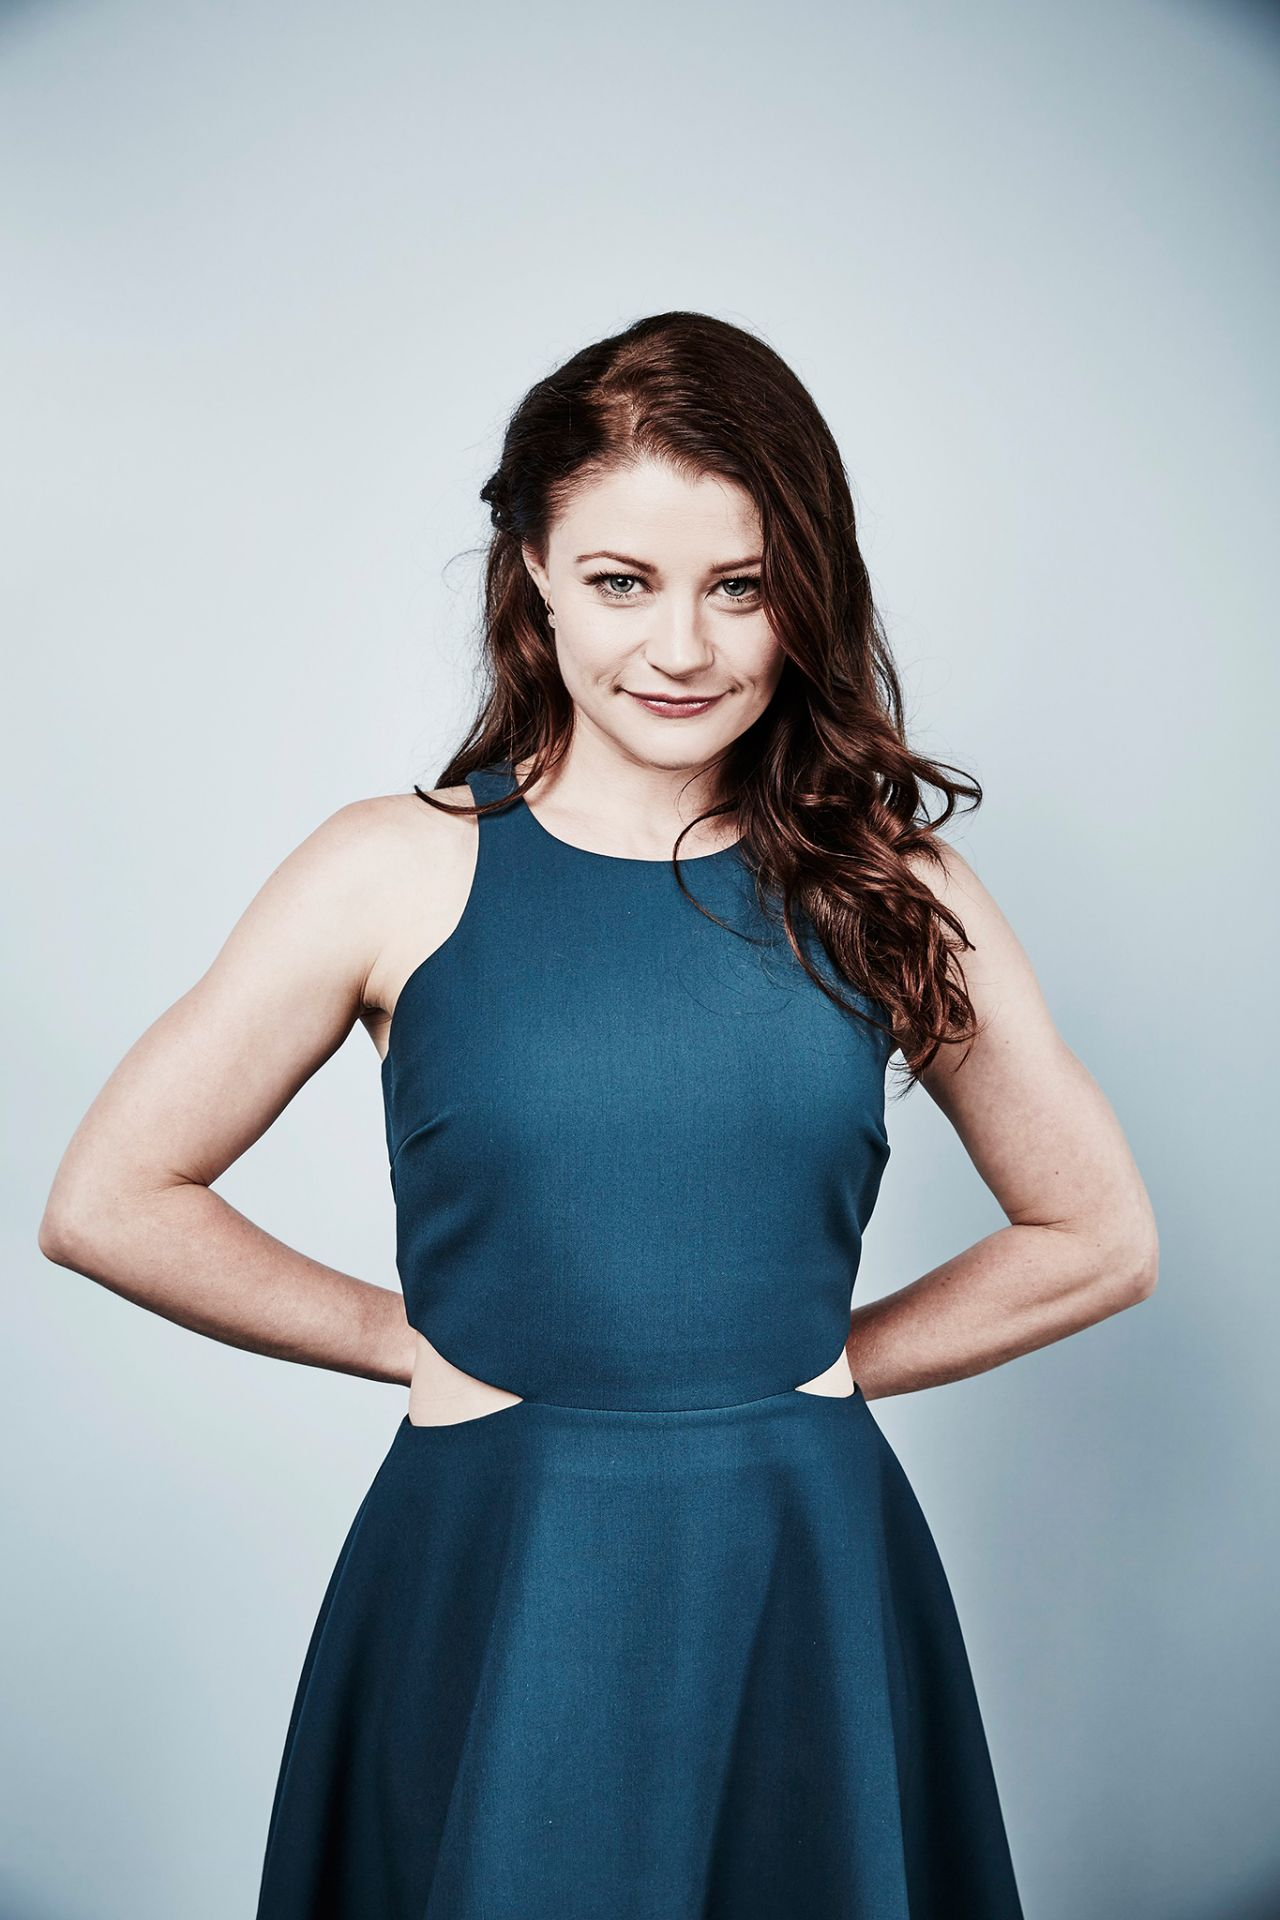 Emilie De Ravin Photoshoot For Once Upon A Time At